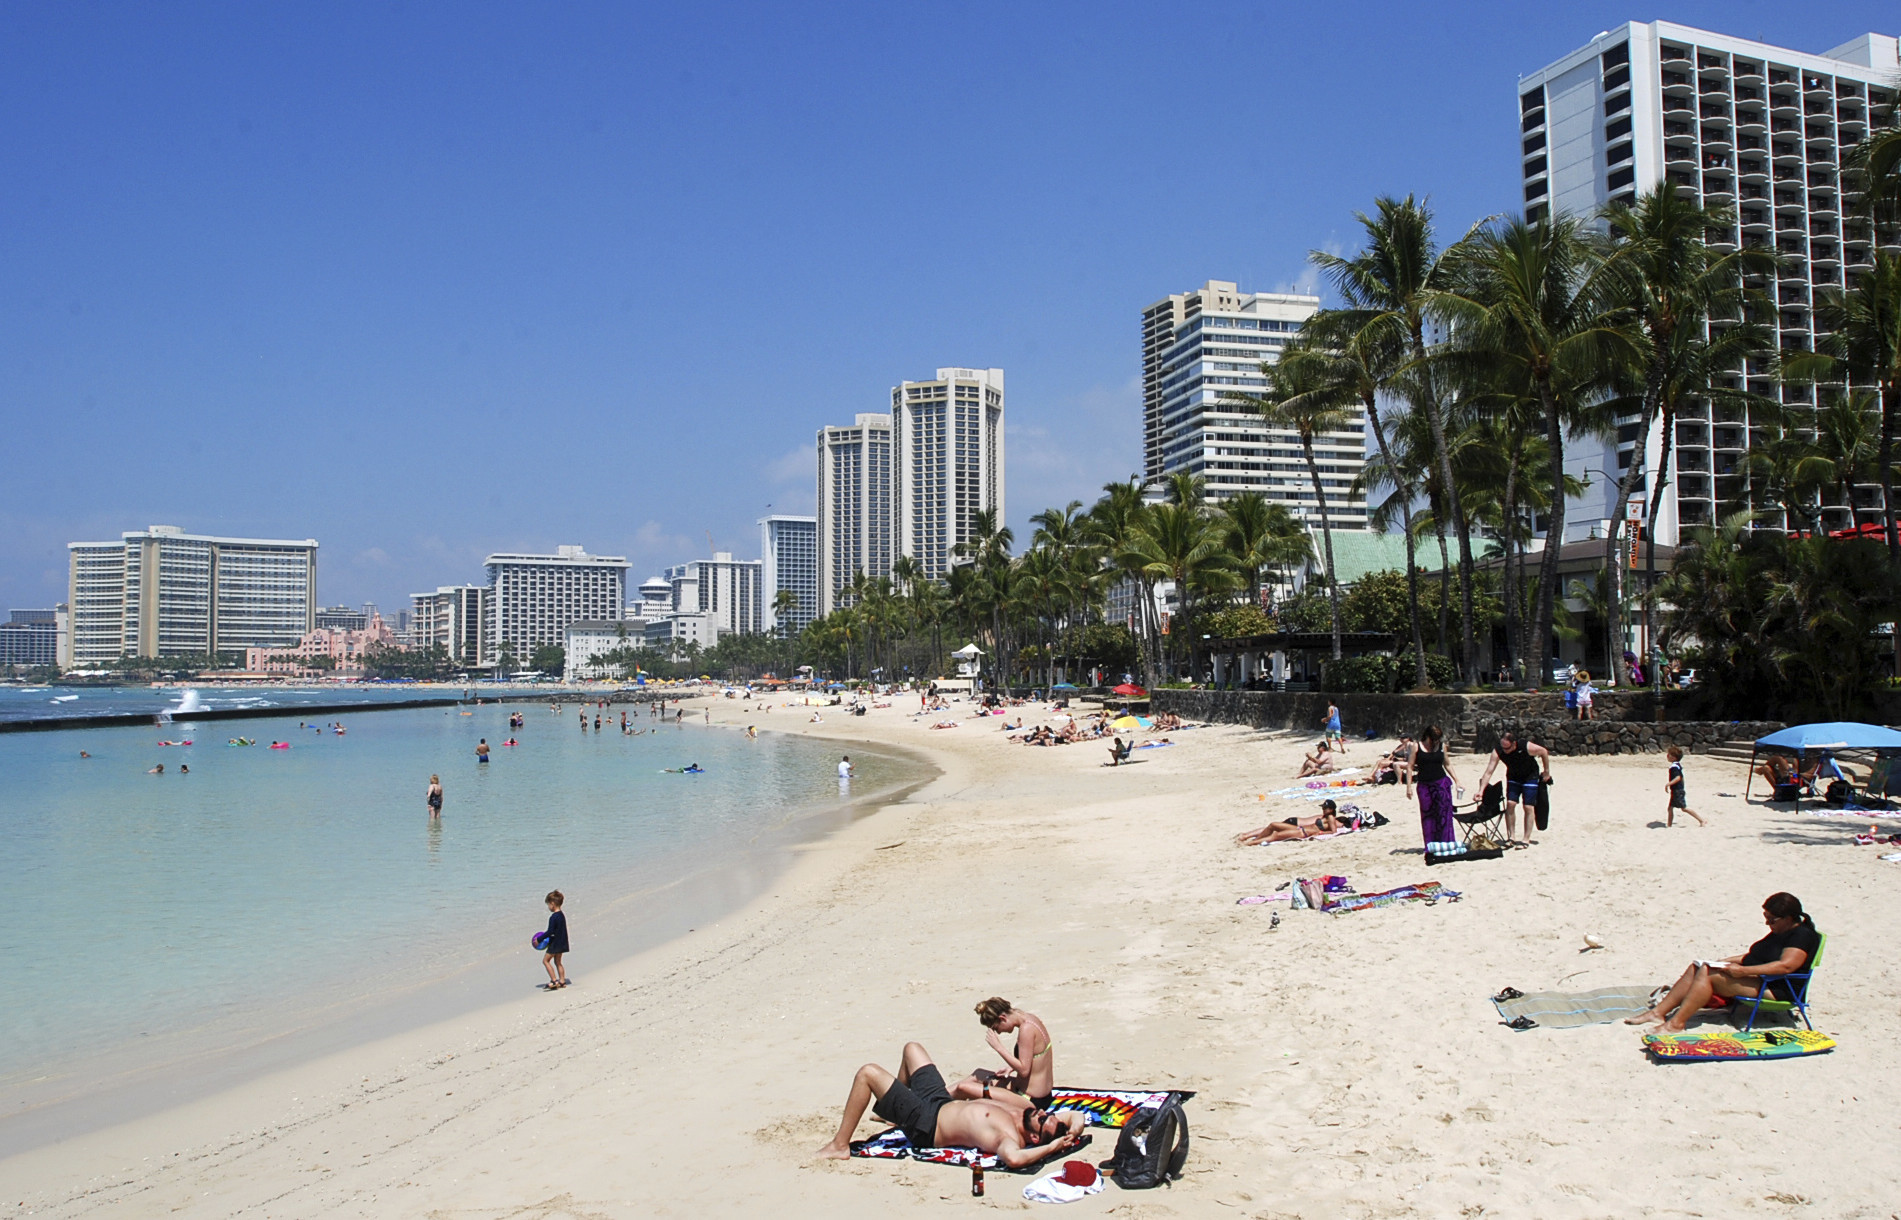 Hawaii fears travel ban could jeopardize tourism, the